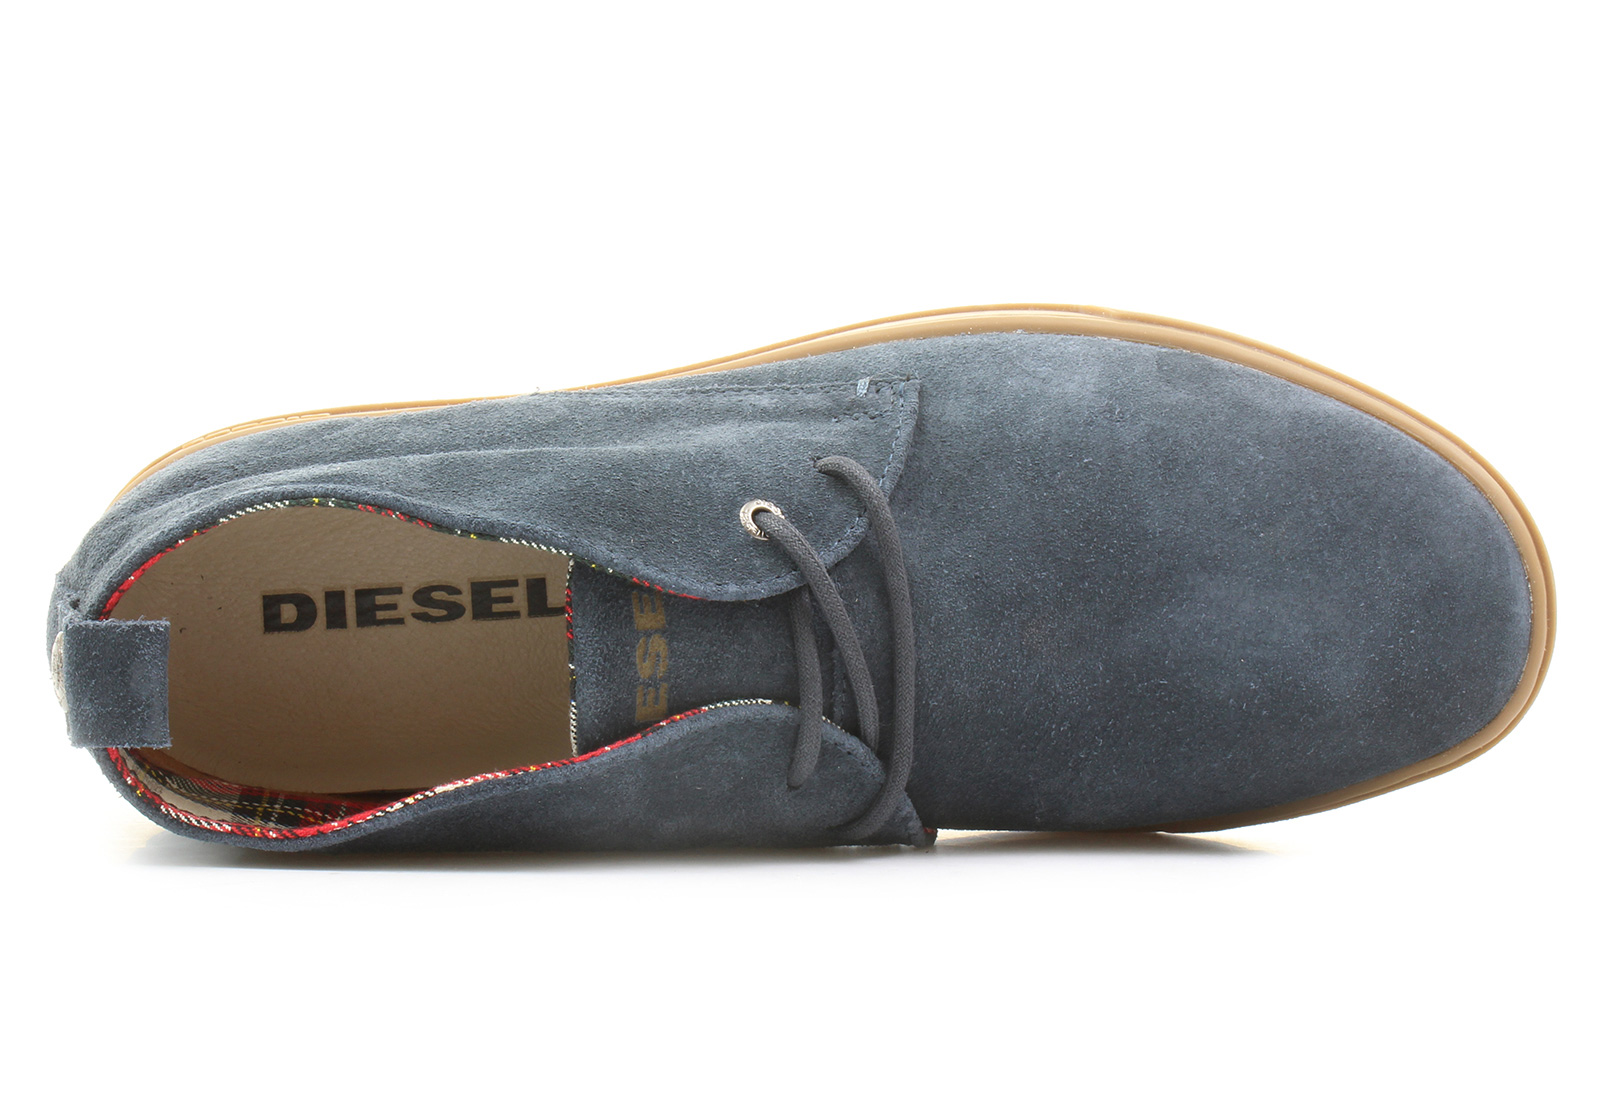 Diesel Shoes - Drive Time - 845-047-6059 - Online shop for ...